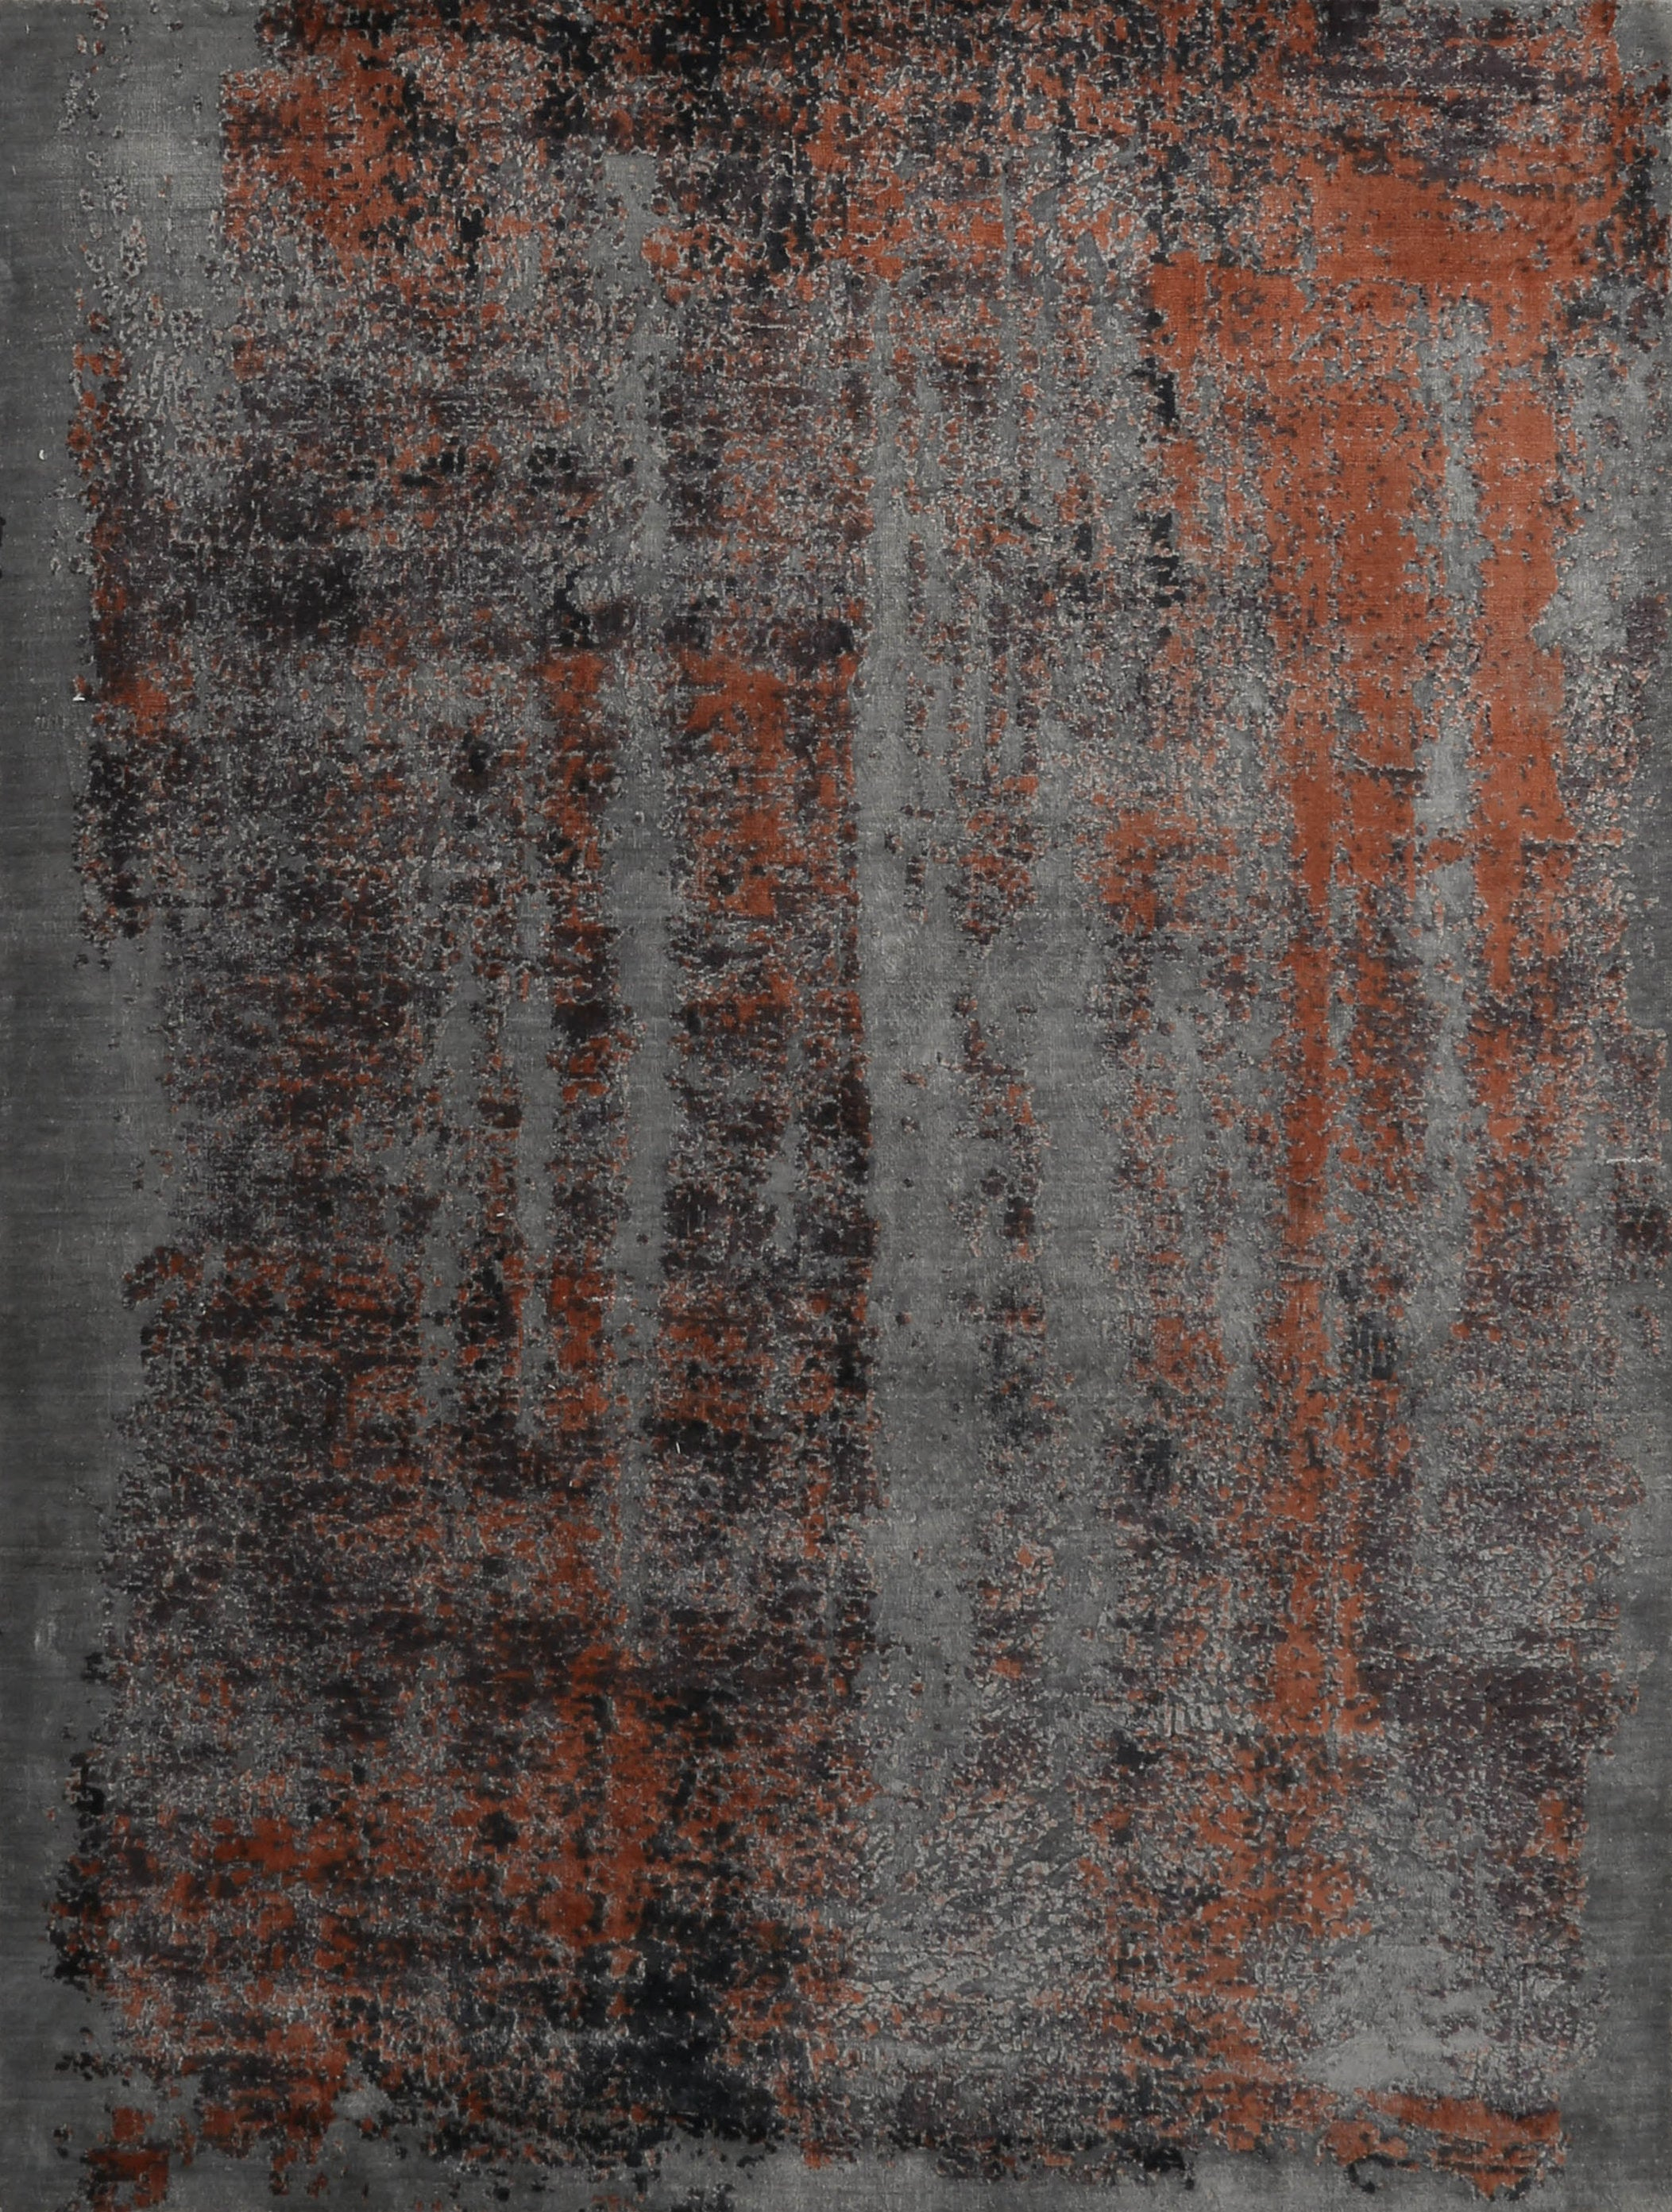 Rustic Bronze Silk Rug Hand Knot Dyed Turkish Rug≡Turkish Tribal Rug Home Decor Vintage Carpet Living Room≡ Antique Gray Area Rug DN60876